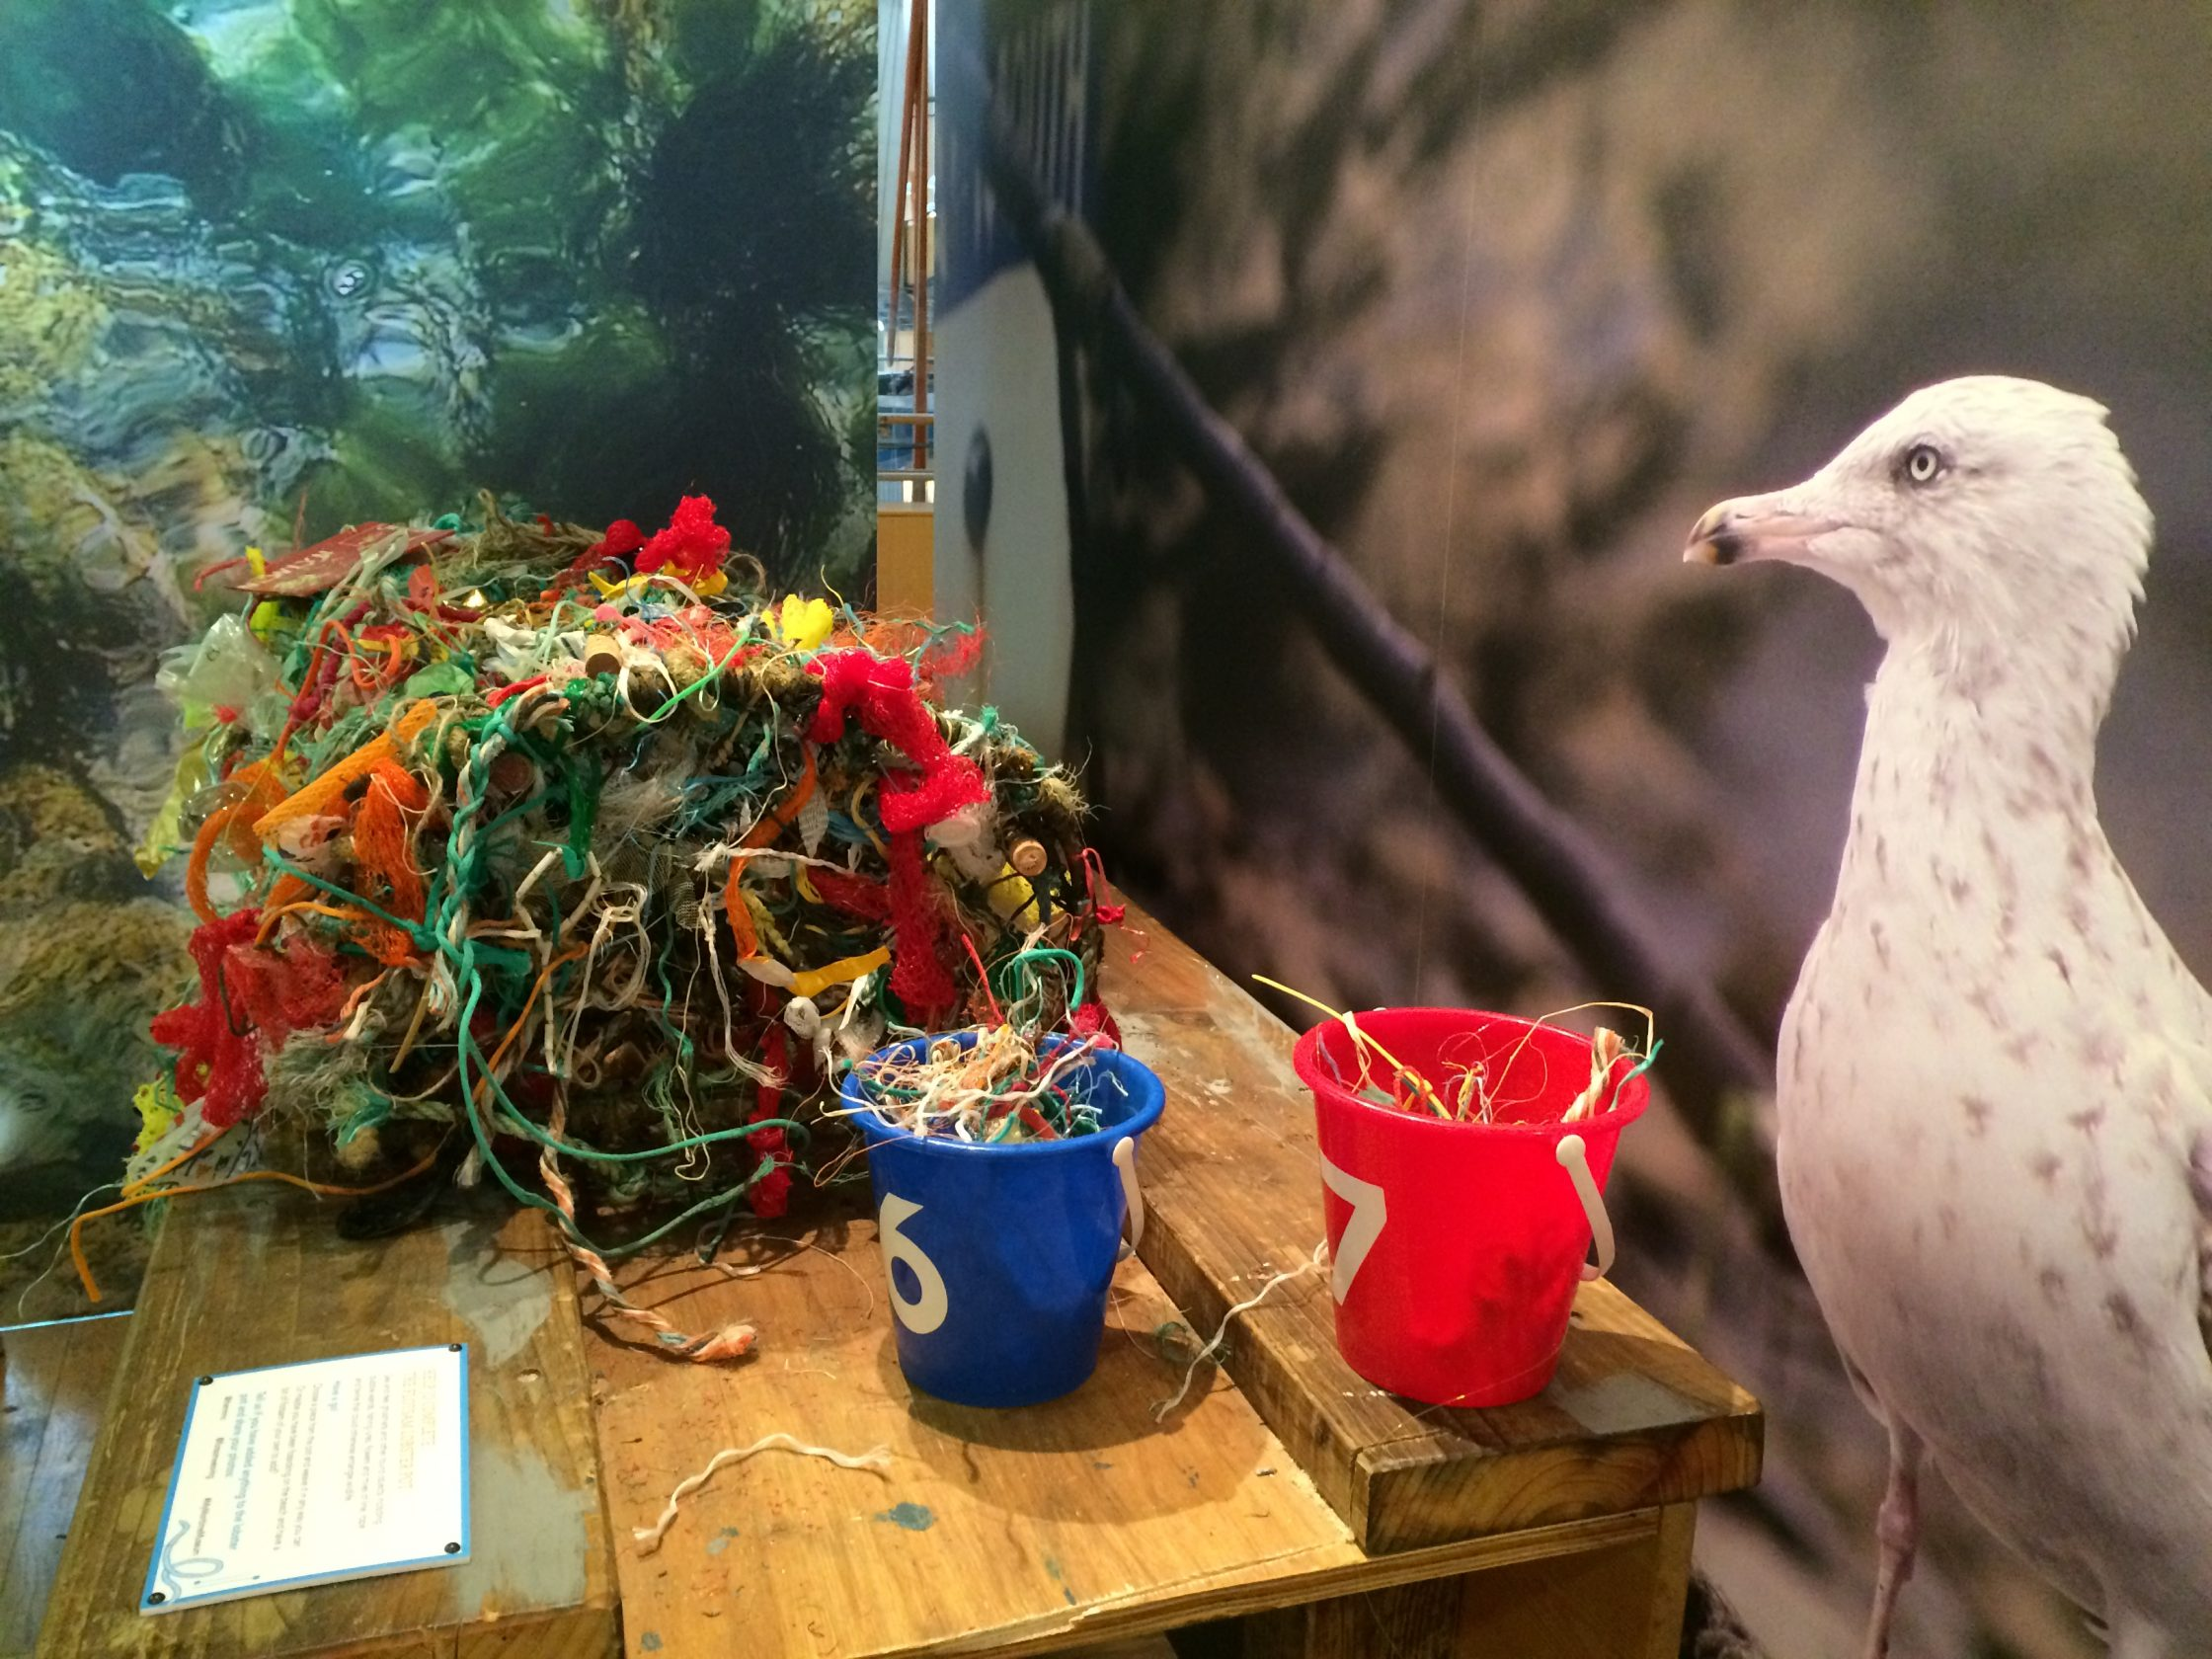 Lobster pot exhibit covered in plastic and marine litter.